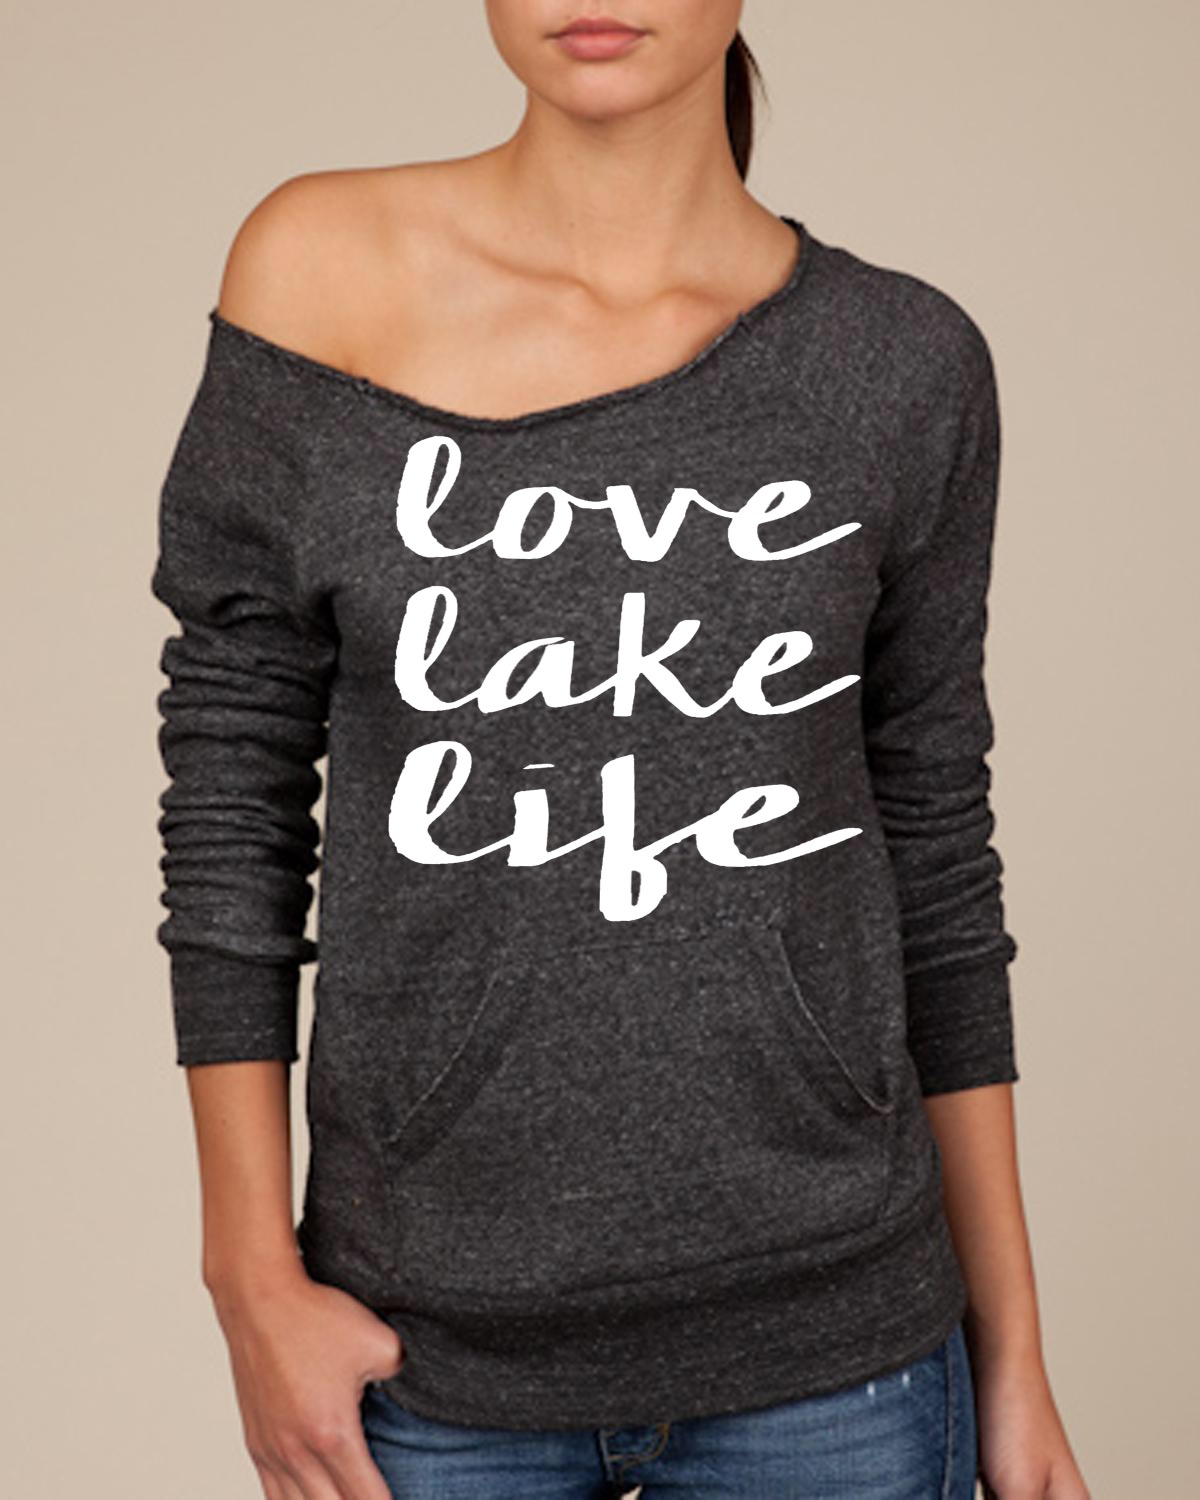 Love Lake Life.  Women's Scoop Neck Sweatshirt